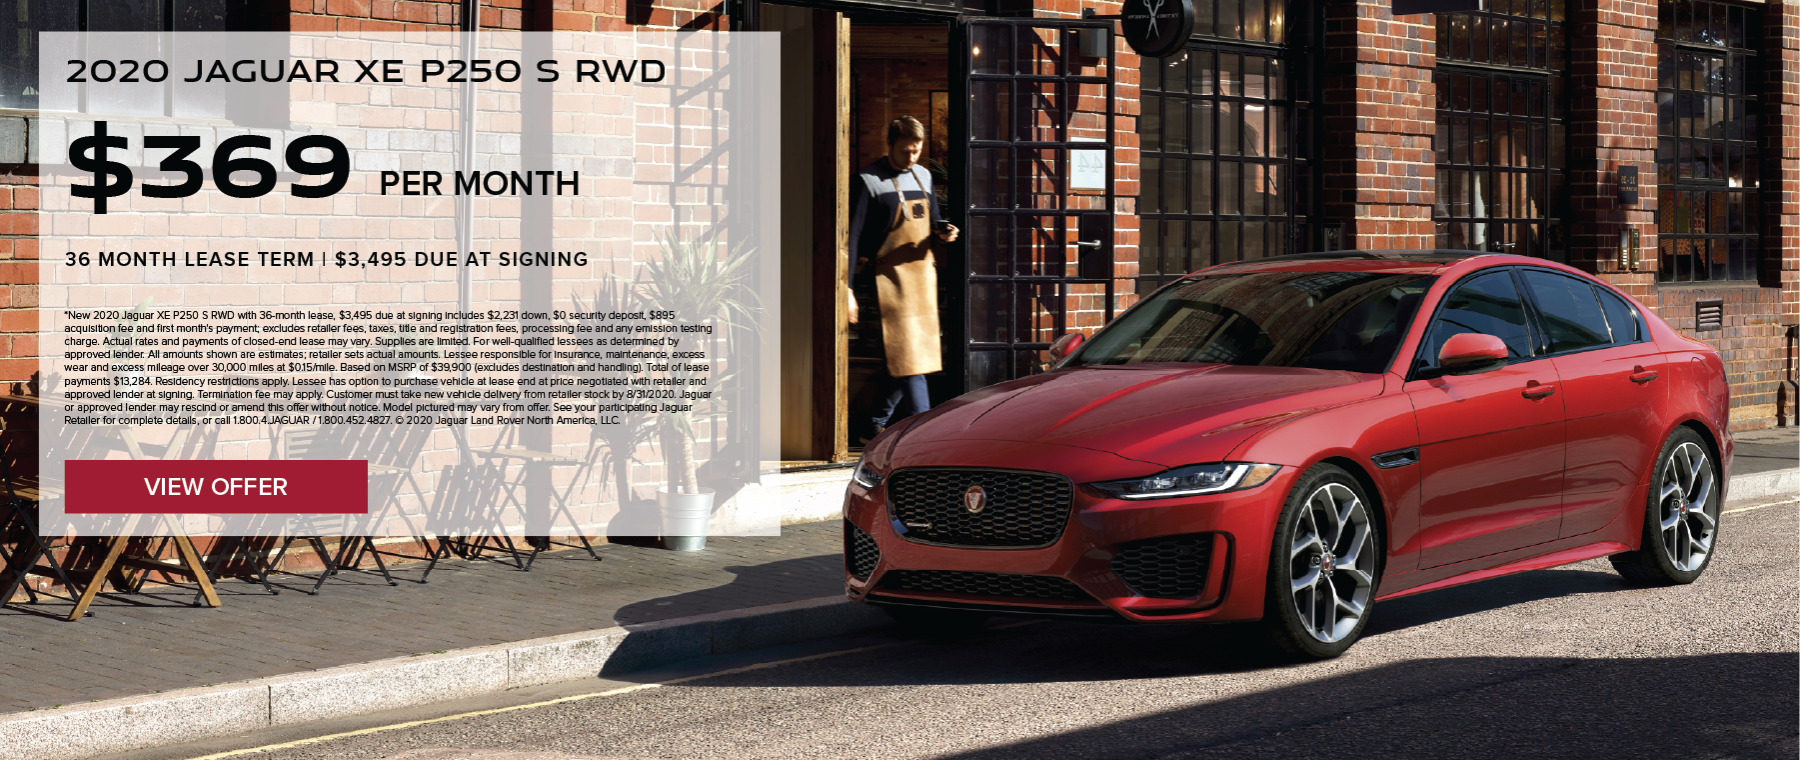 2020 JAGUAR XE P250 S RWD. $369 PER MONTH. 36 MONTH LEASE TERM WITH $3,495 DUE AT SIGNING. $0 SECURITY DEPOSIT. 10,000 MILES PER YEAR. EXCLUDES RETAILER FEES, TAXES, TITLE AND REGISTRATION FEES, PROCESSING FEE AND ANY EMISSION TESTING CHARGE. OFFER ENDS 8/31/2020.